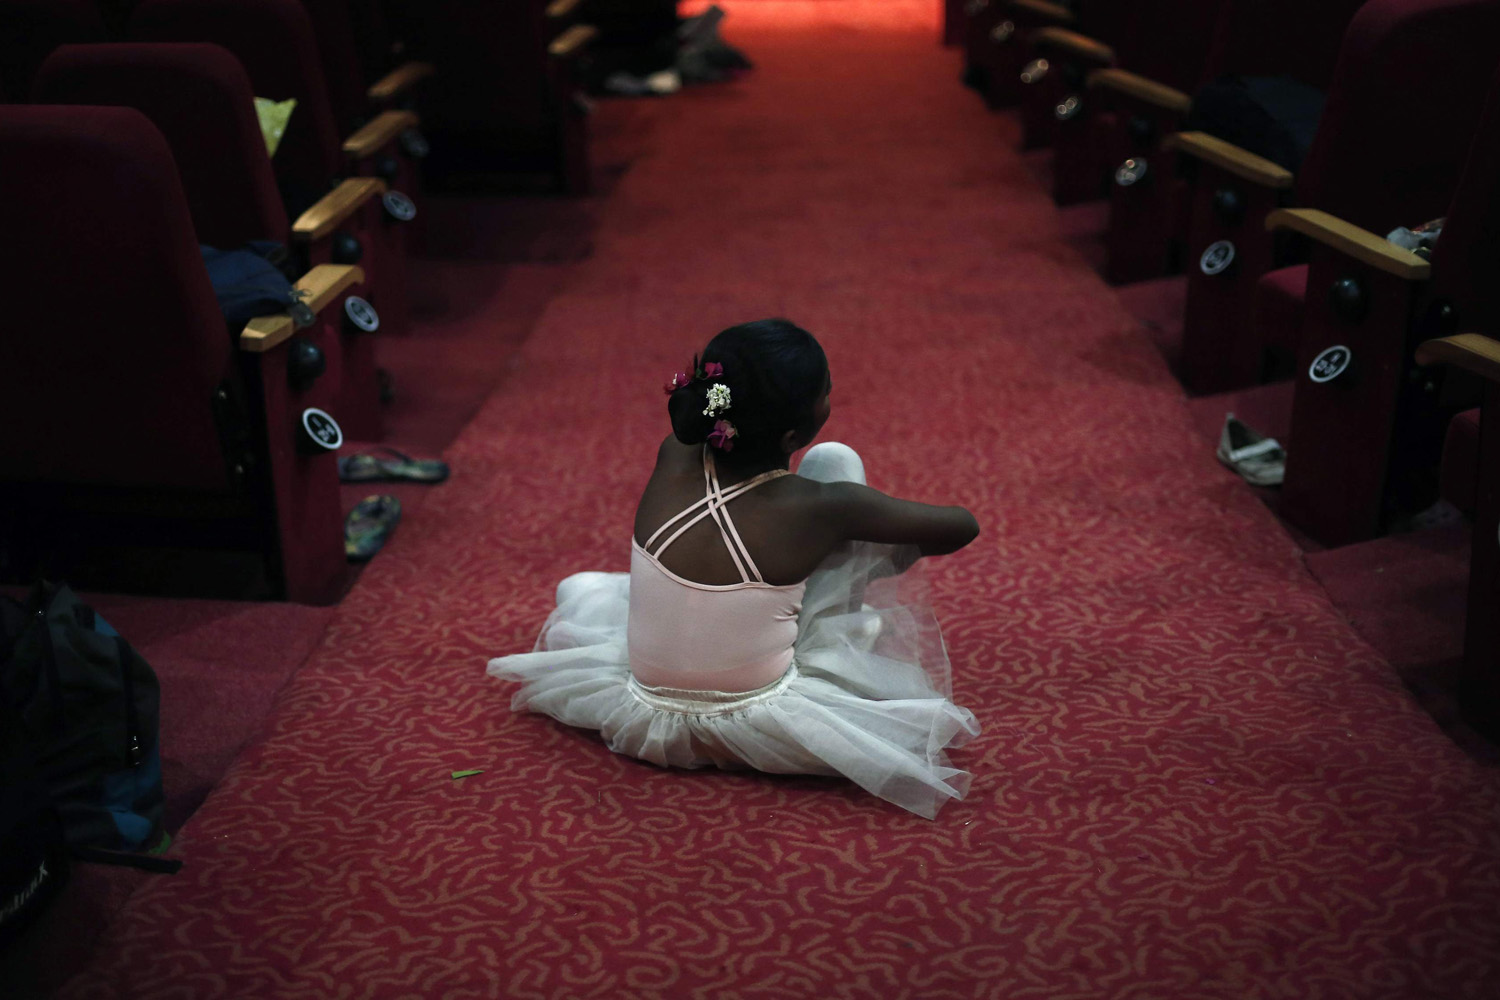 Apr. 29, 2014. A girl sits backstage after getting ready for her dance recital to celebrate International Dance Day, in New Delhi, India.